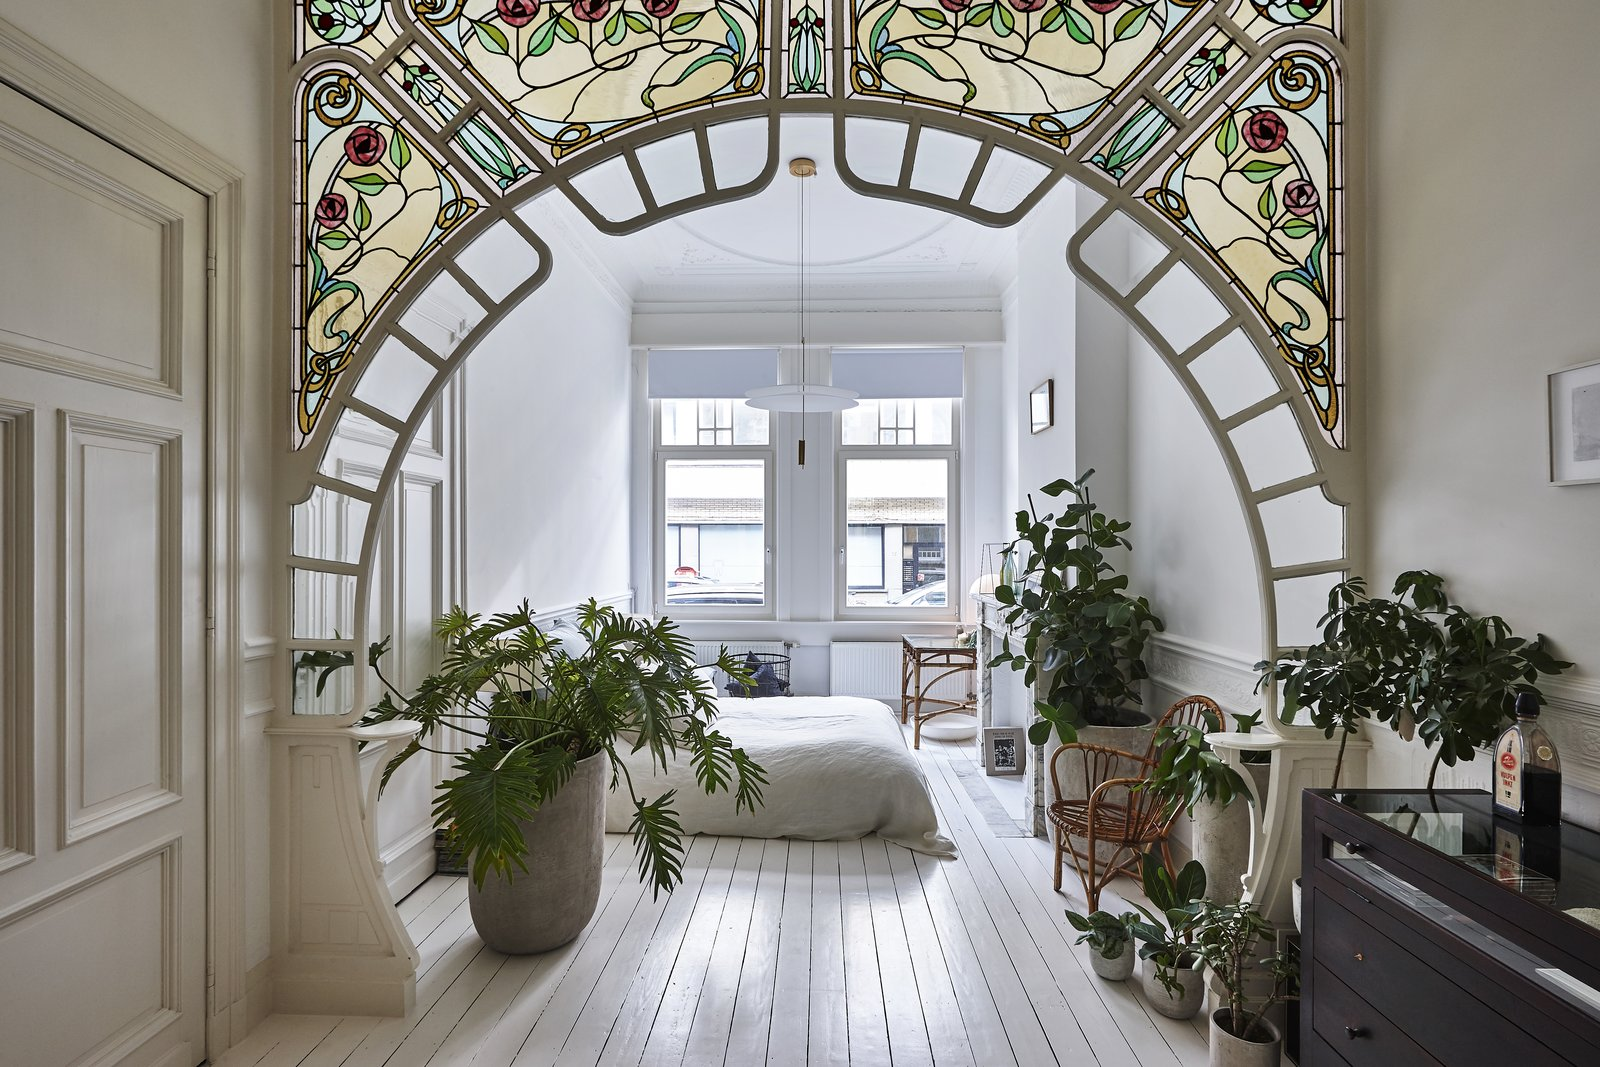 Bedroom, Pendant Lighting, Bed, Chair, and Painted Wood Floor Antwerp Apartment by Anouk Taeymans is a Best Renovation nominee.  Best Photos from An Antwerp Apartment Captures the Spirit of the Belle Époque